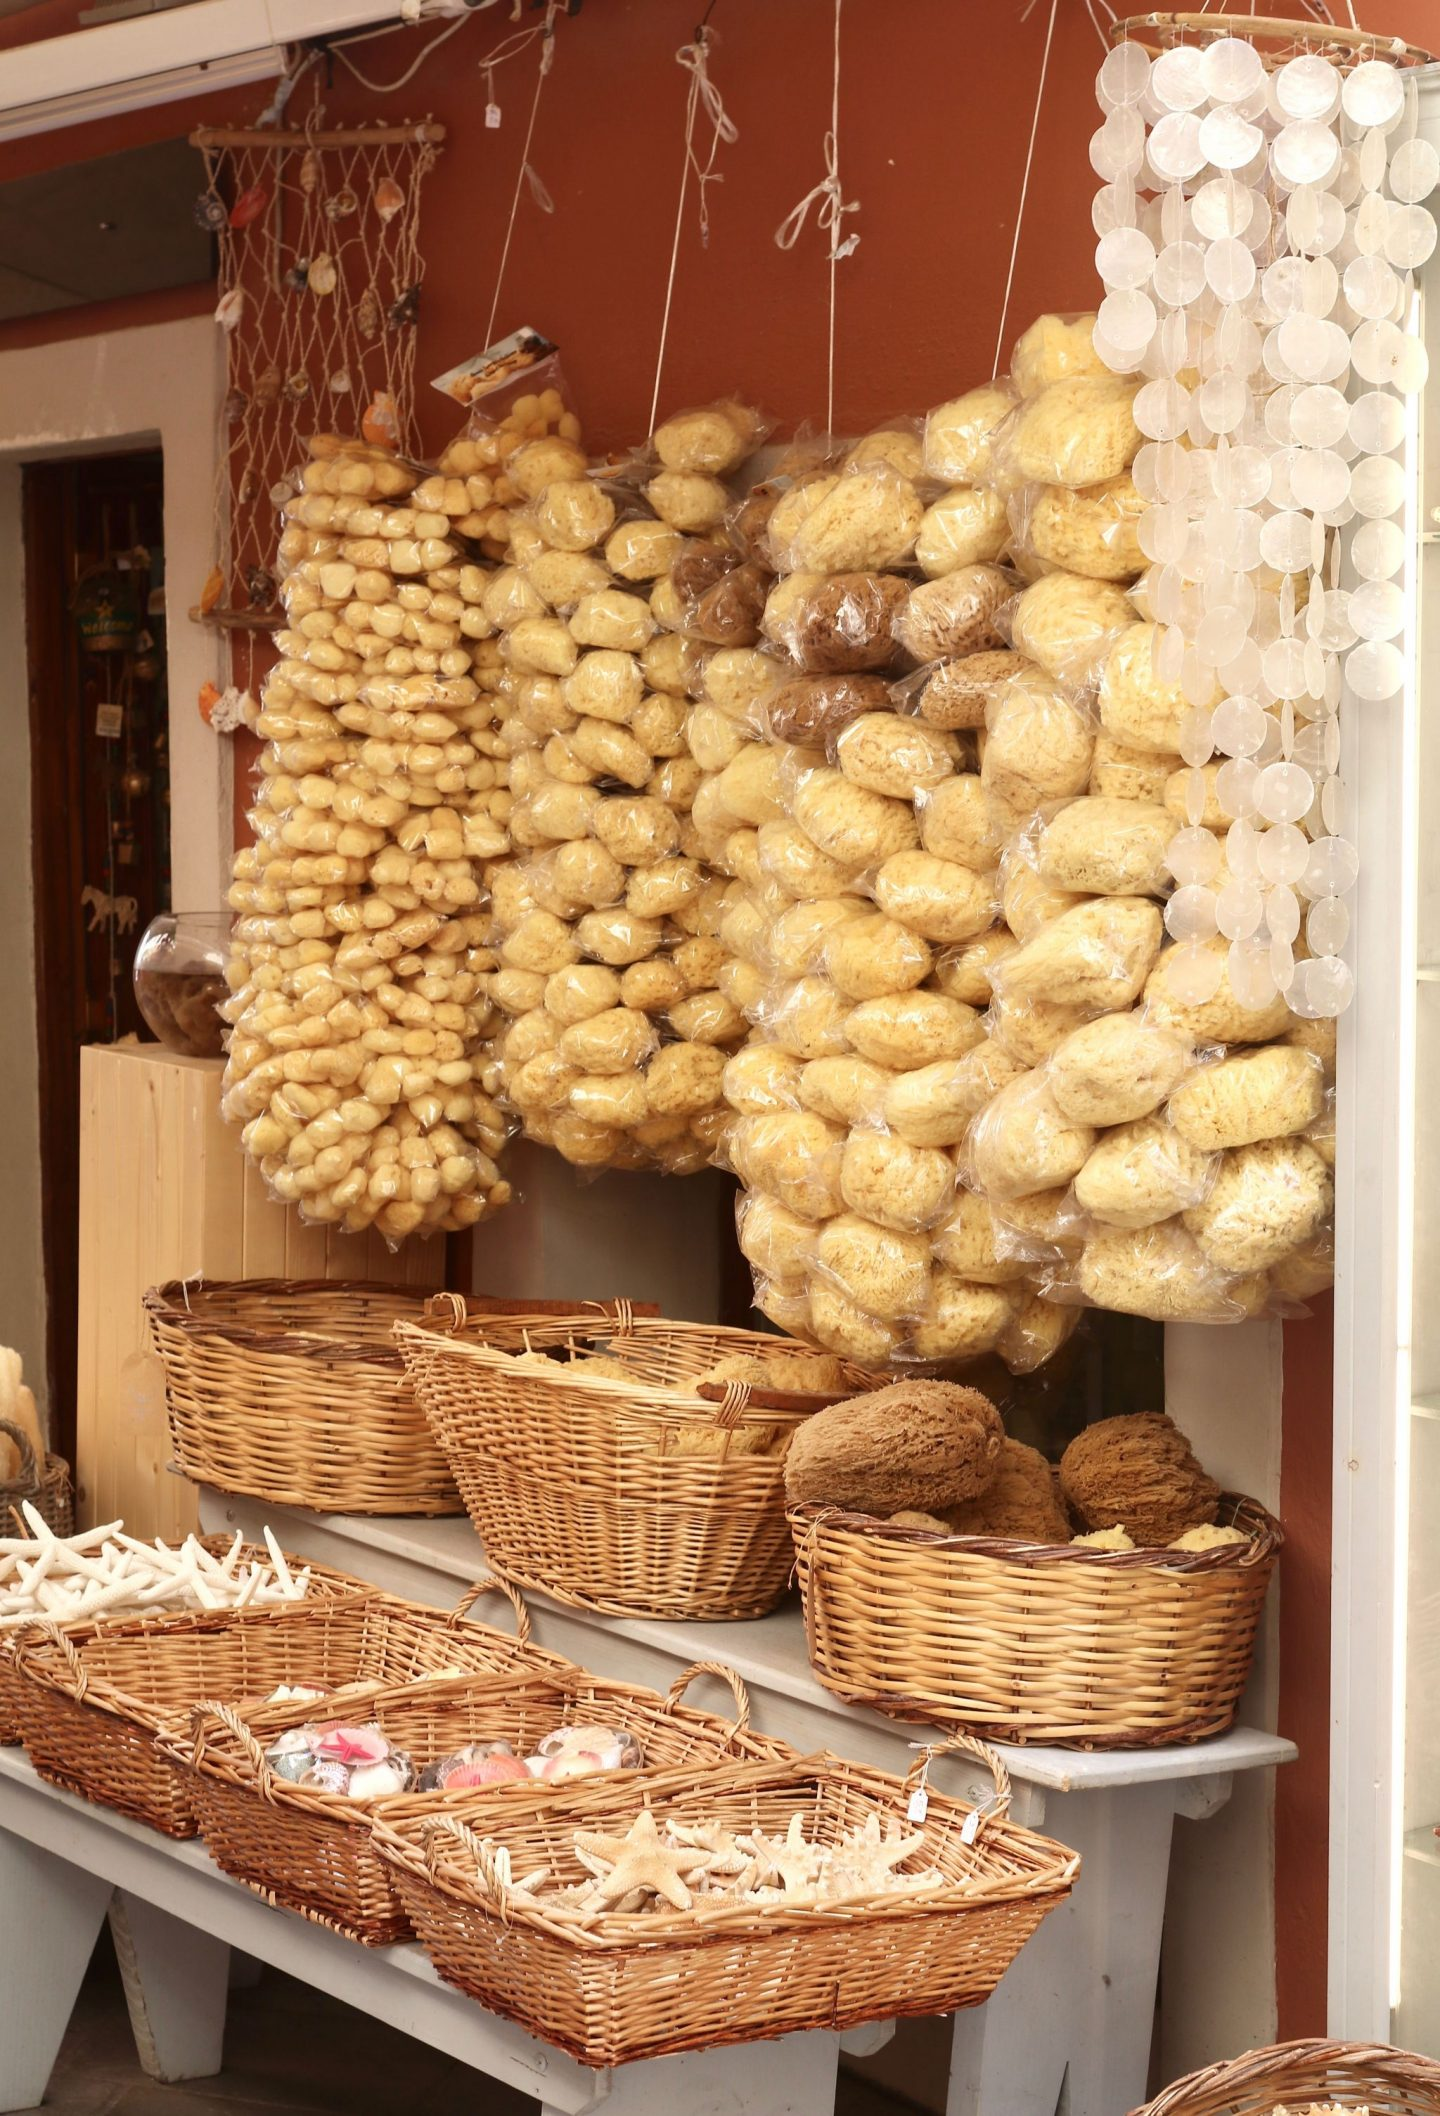 Corfu town sponge shop | Corfu travel guide